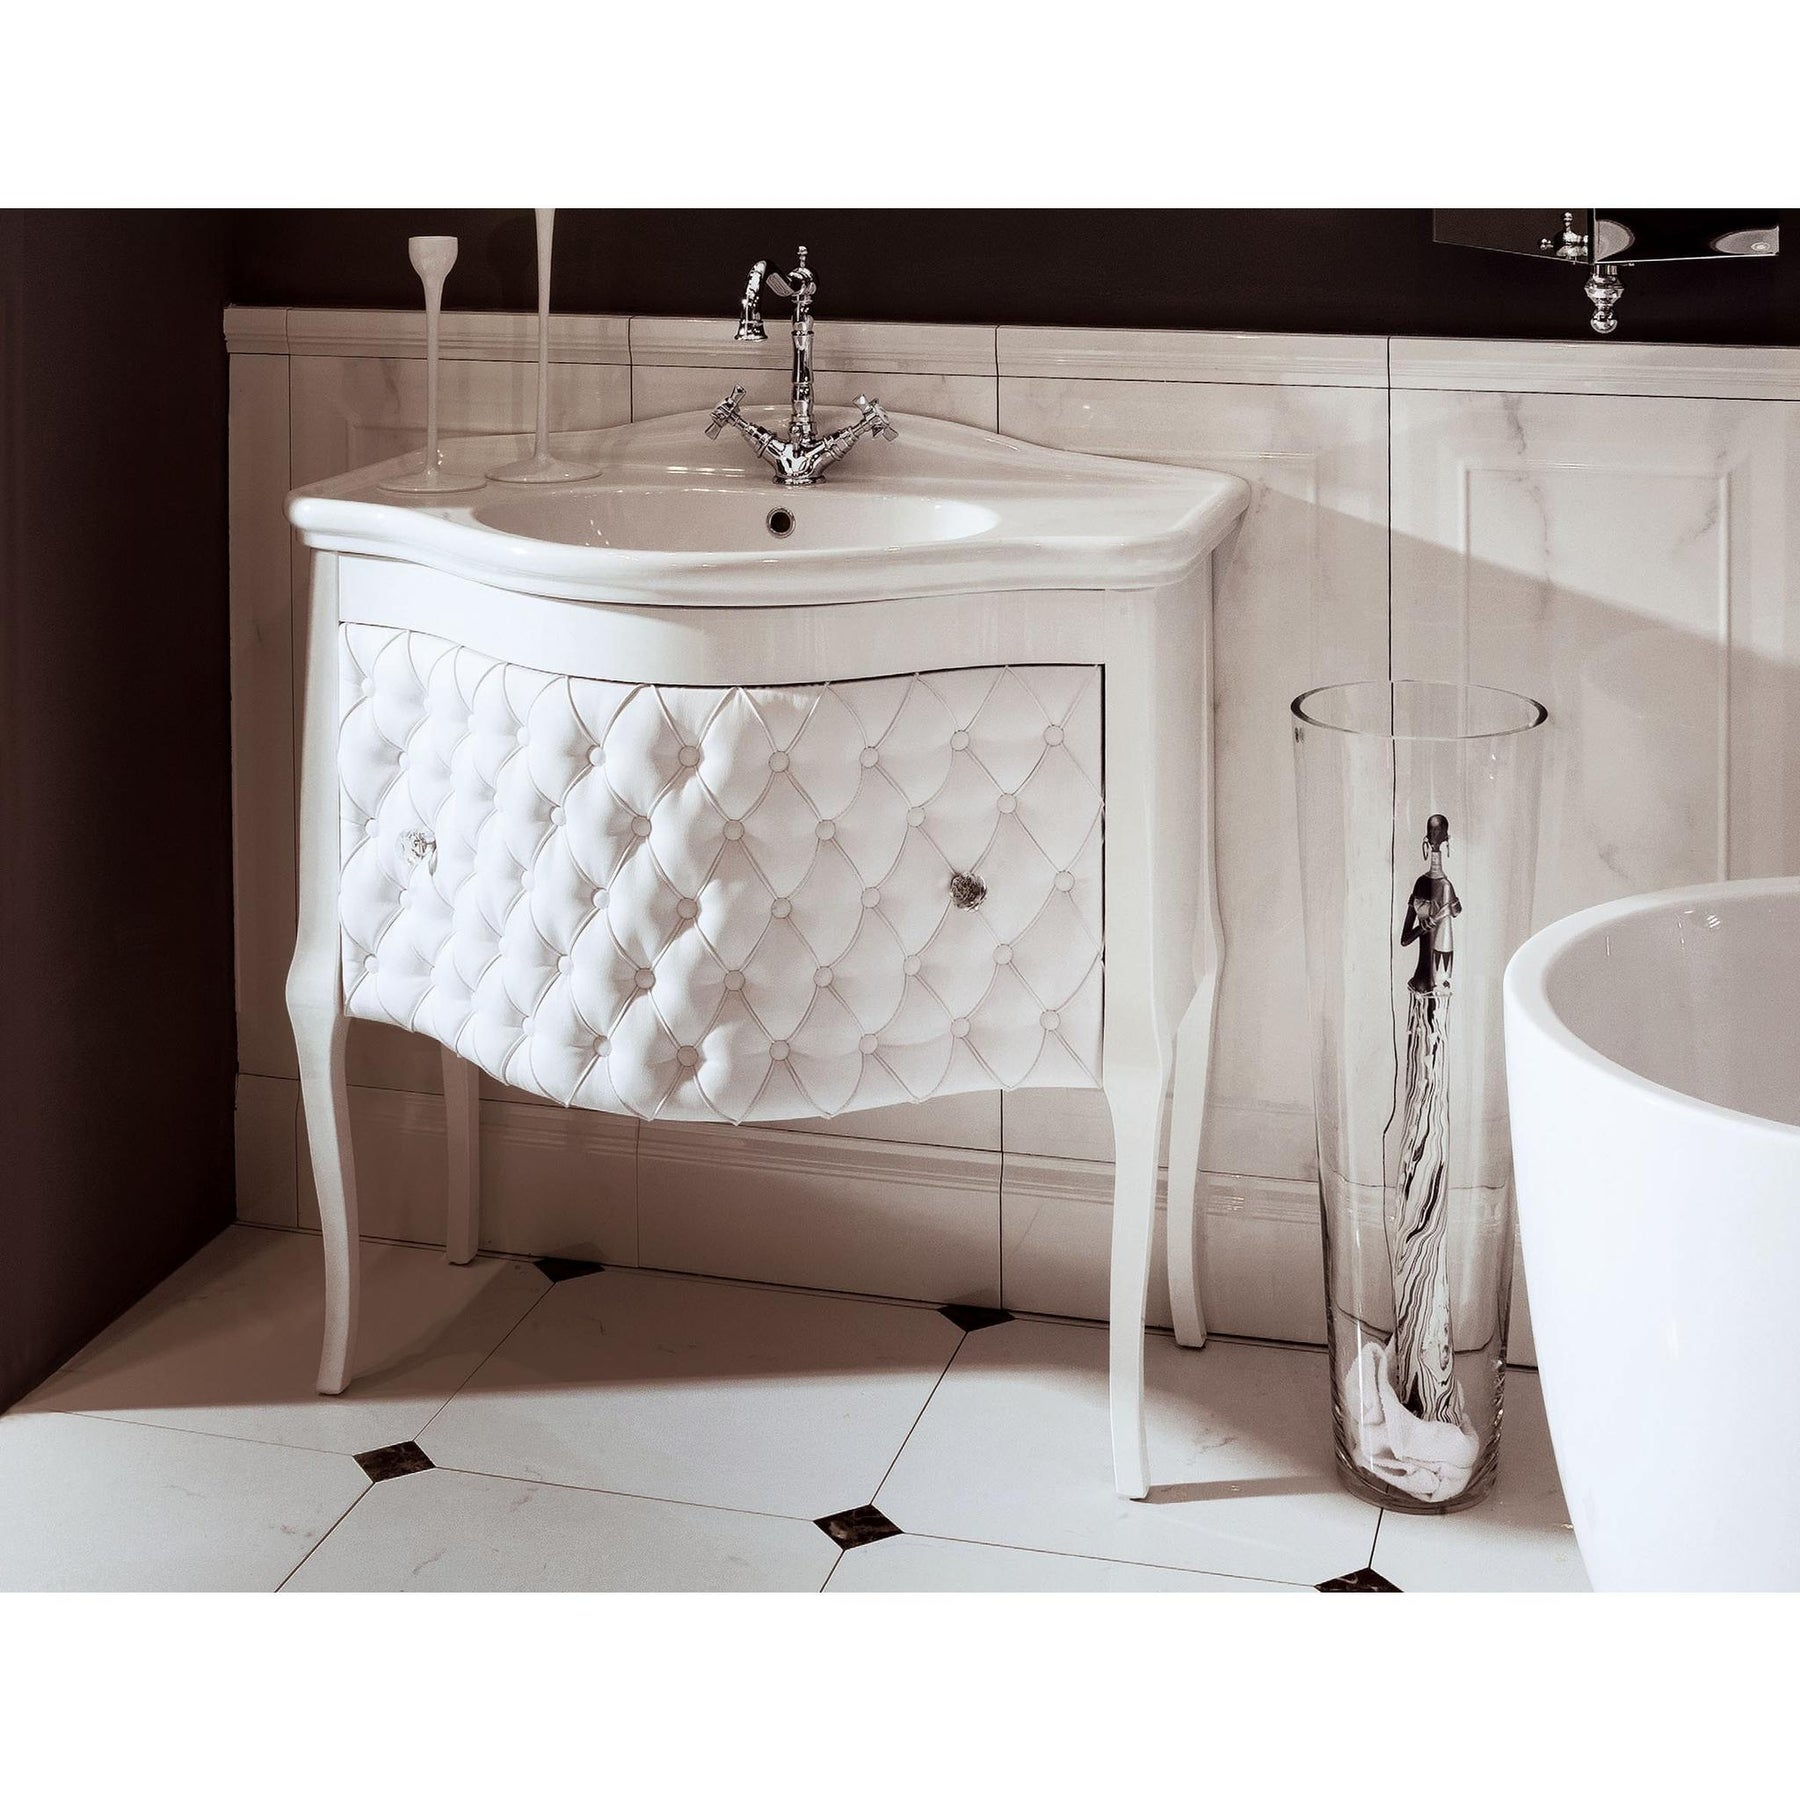 Gm Luxury Zena 33 5 Bathroom Vanity Cabinet Set Single Sink Glossy Lacquer Gm Luxury Bath Collection Bathroom Vanities And Sink Consoles 11000 00 12000 00 7000 00 8000 00 2 Drawers 30 To 34